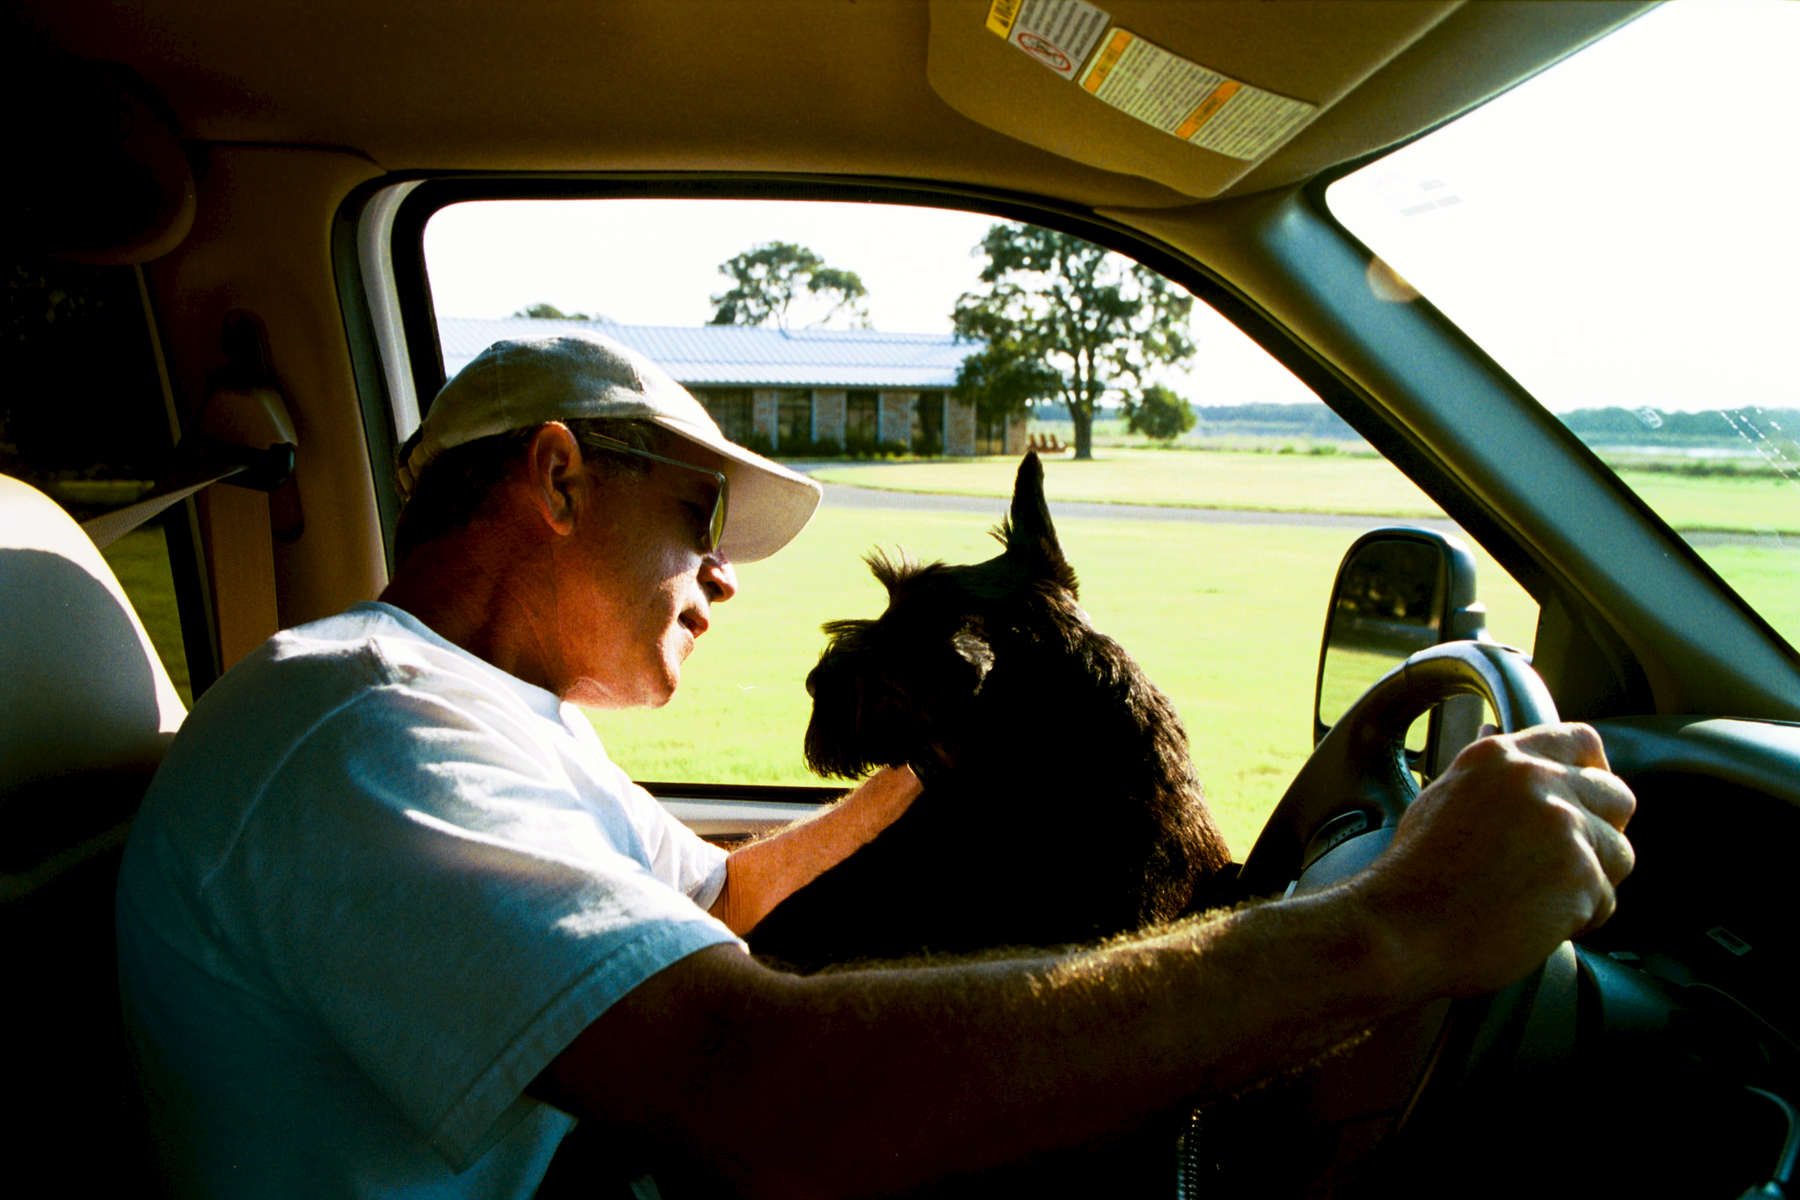 President Bush drives his truck at the Ranch. Barney sits in his lap. Crawford, Texas. Restricted. Do not print without approval.  Bush Family Scrapbook August 1-August 27, 2003